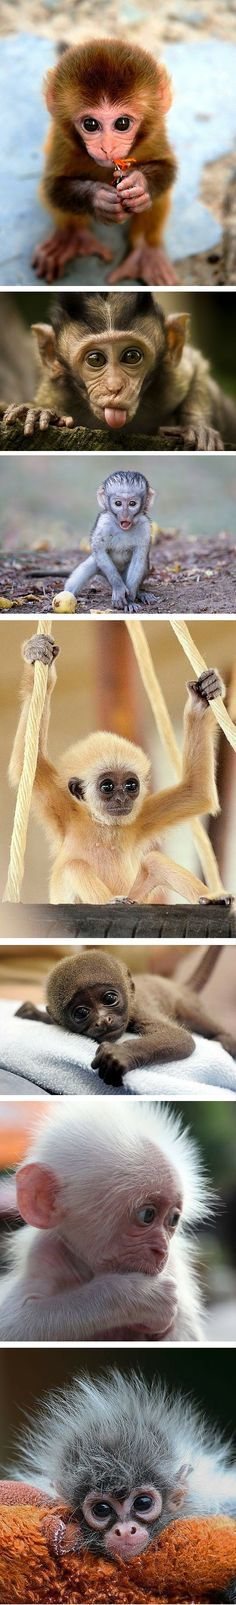 All baby animals are generally adorable, but some seem to be extra cute — like, for instance, baby monkeys.